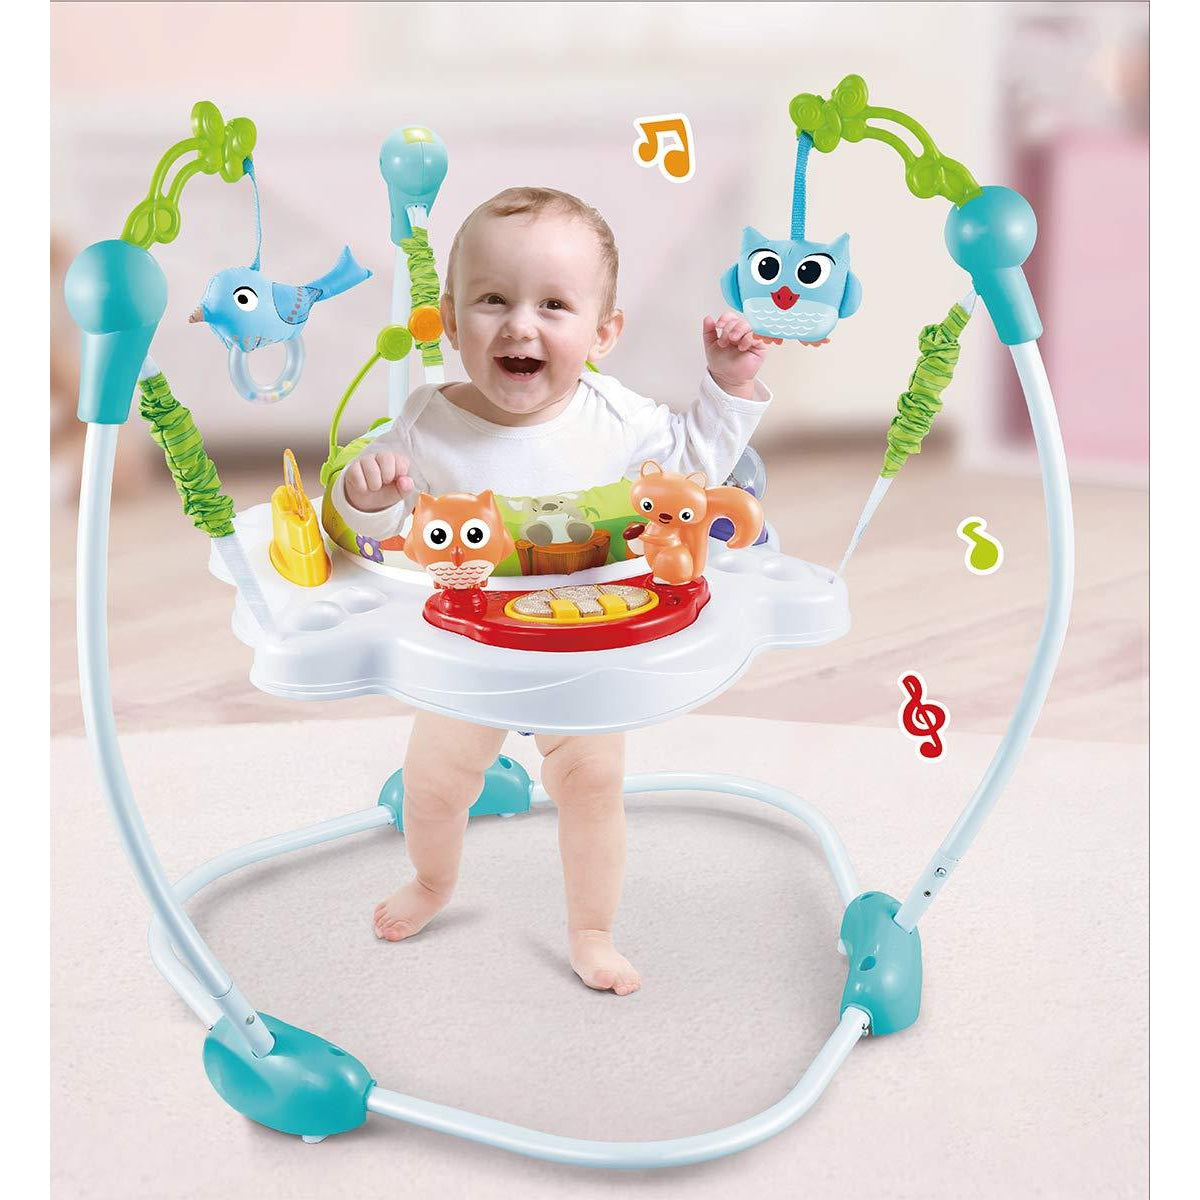 R for Rabbit Kangaroo Baby Jumper Bouncer - Multi Use Bouncing Jumper